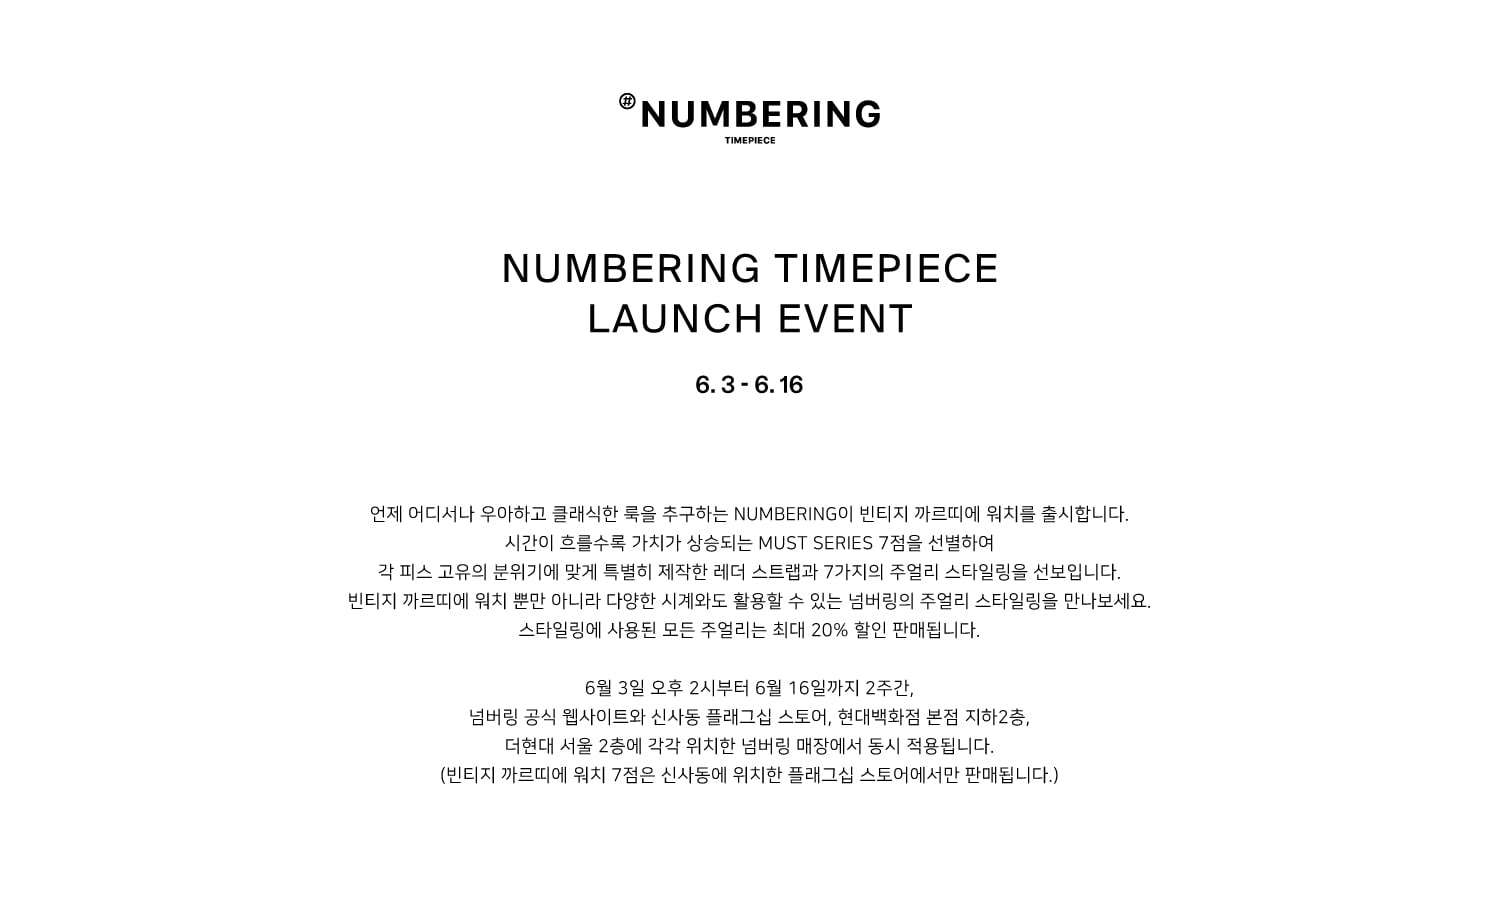 NMBR timepiece launch